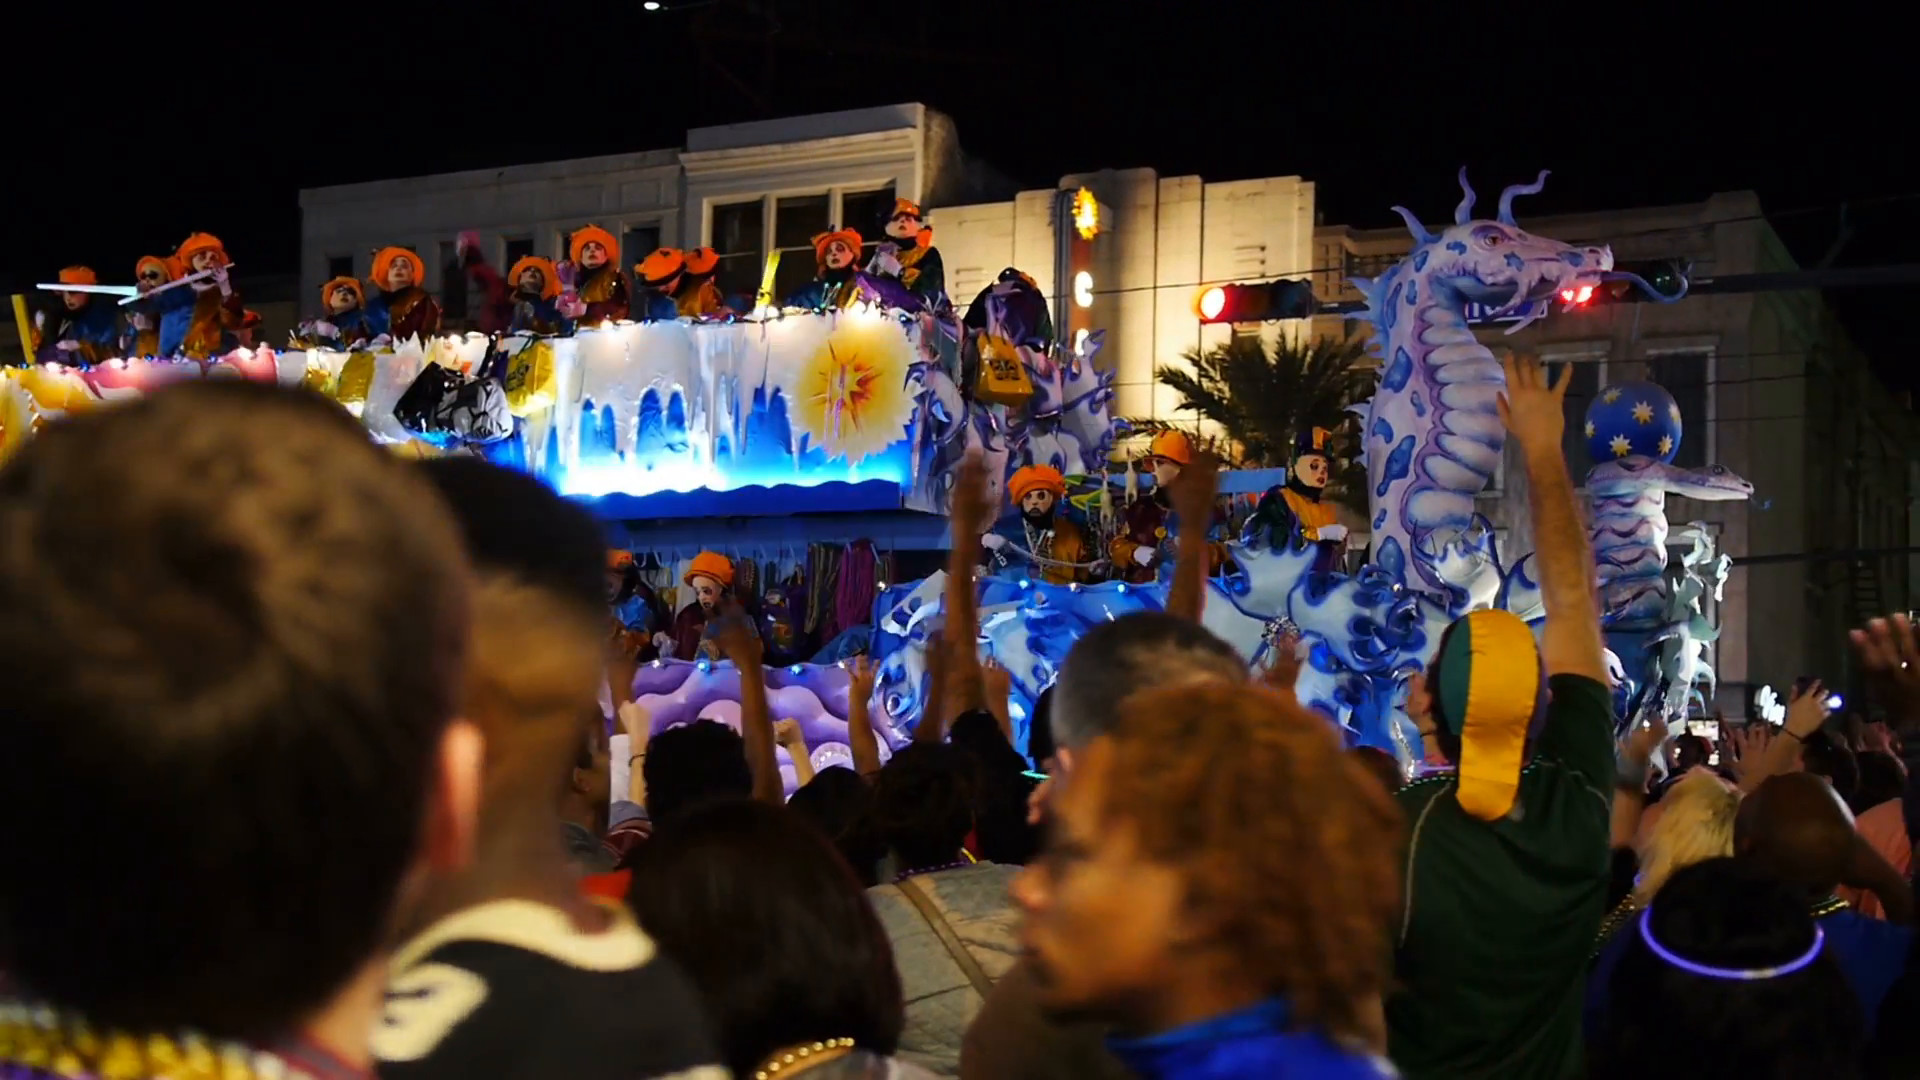 1920x1080 Krewe of Endymion Float in a Mardi Gras Parade 4127 Stock Video Footage -  Storyblocks Video